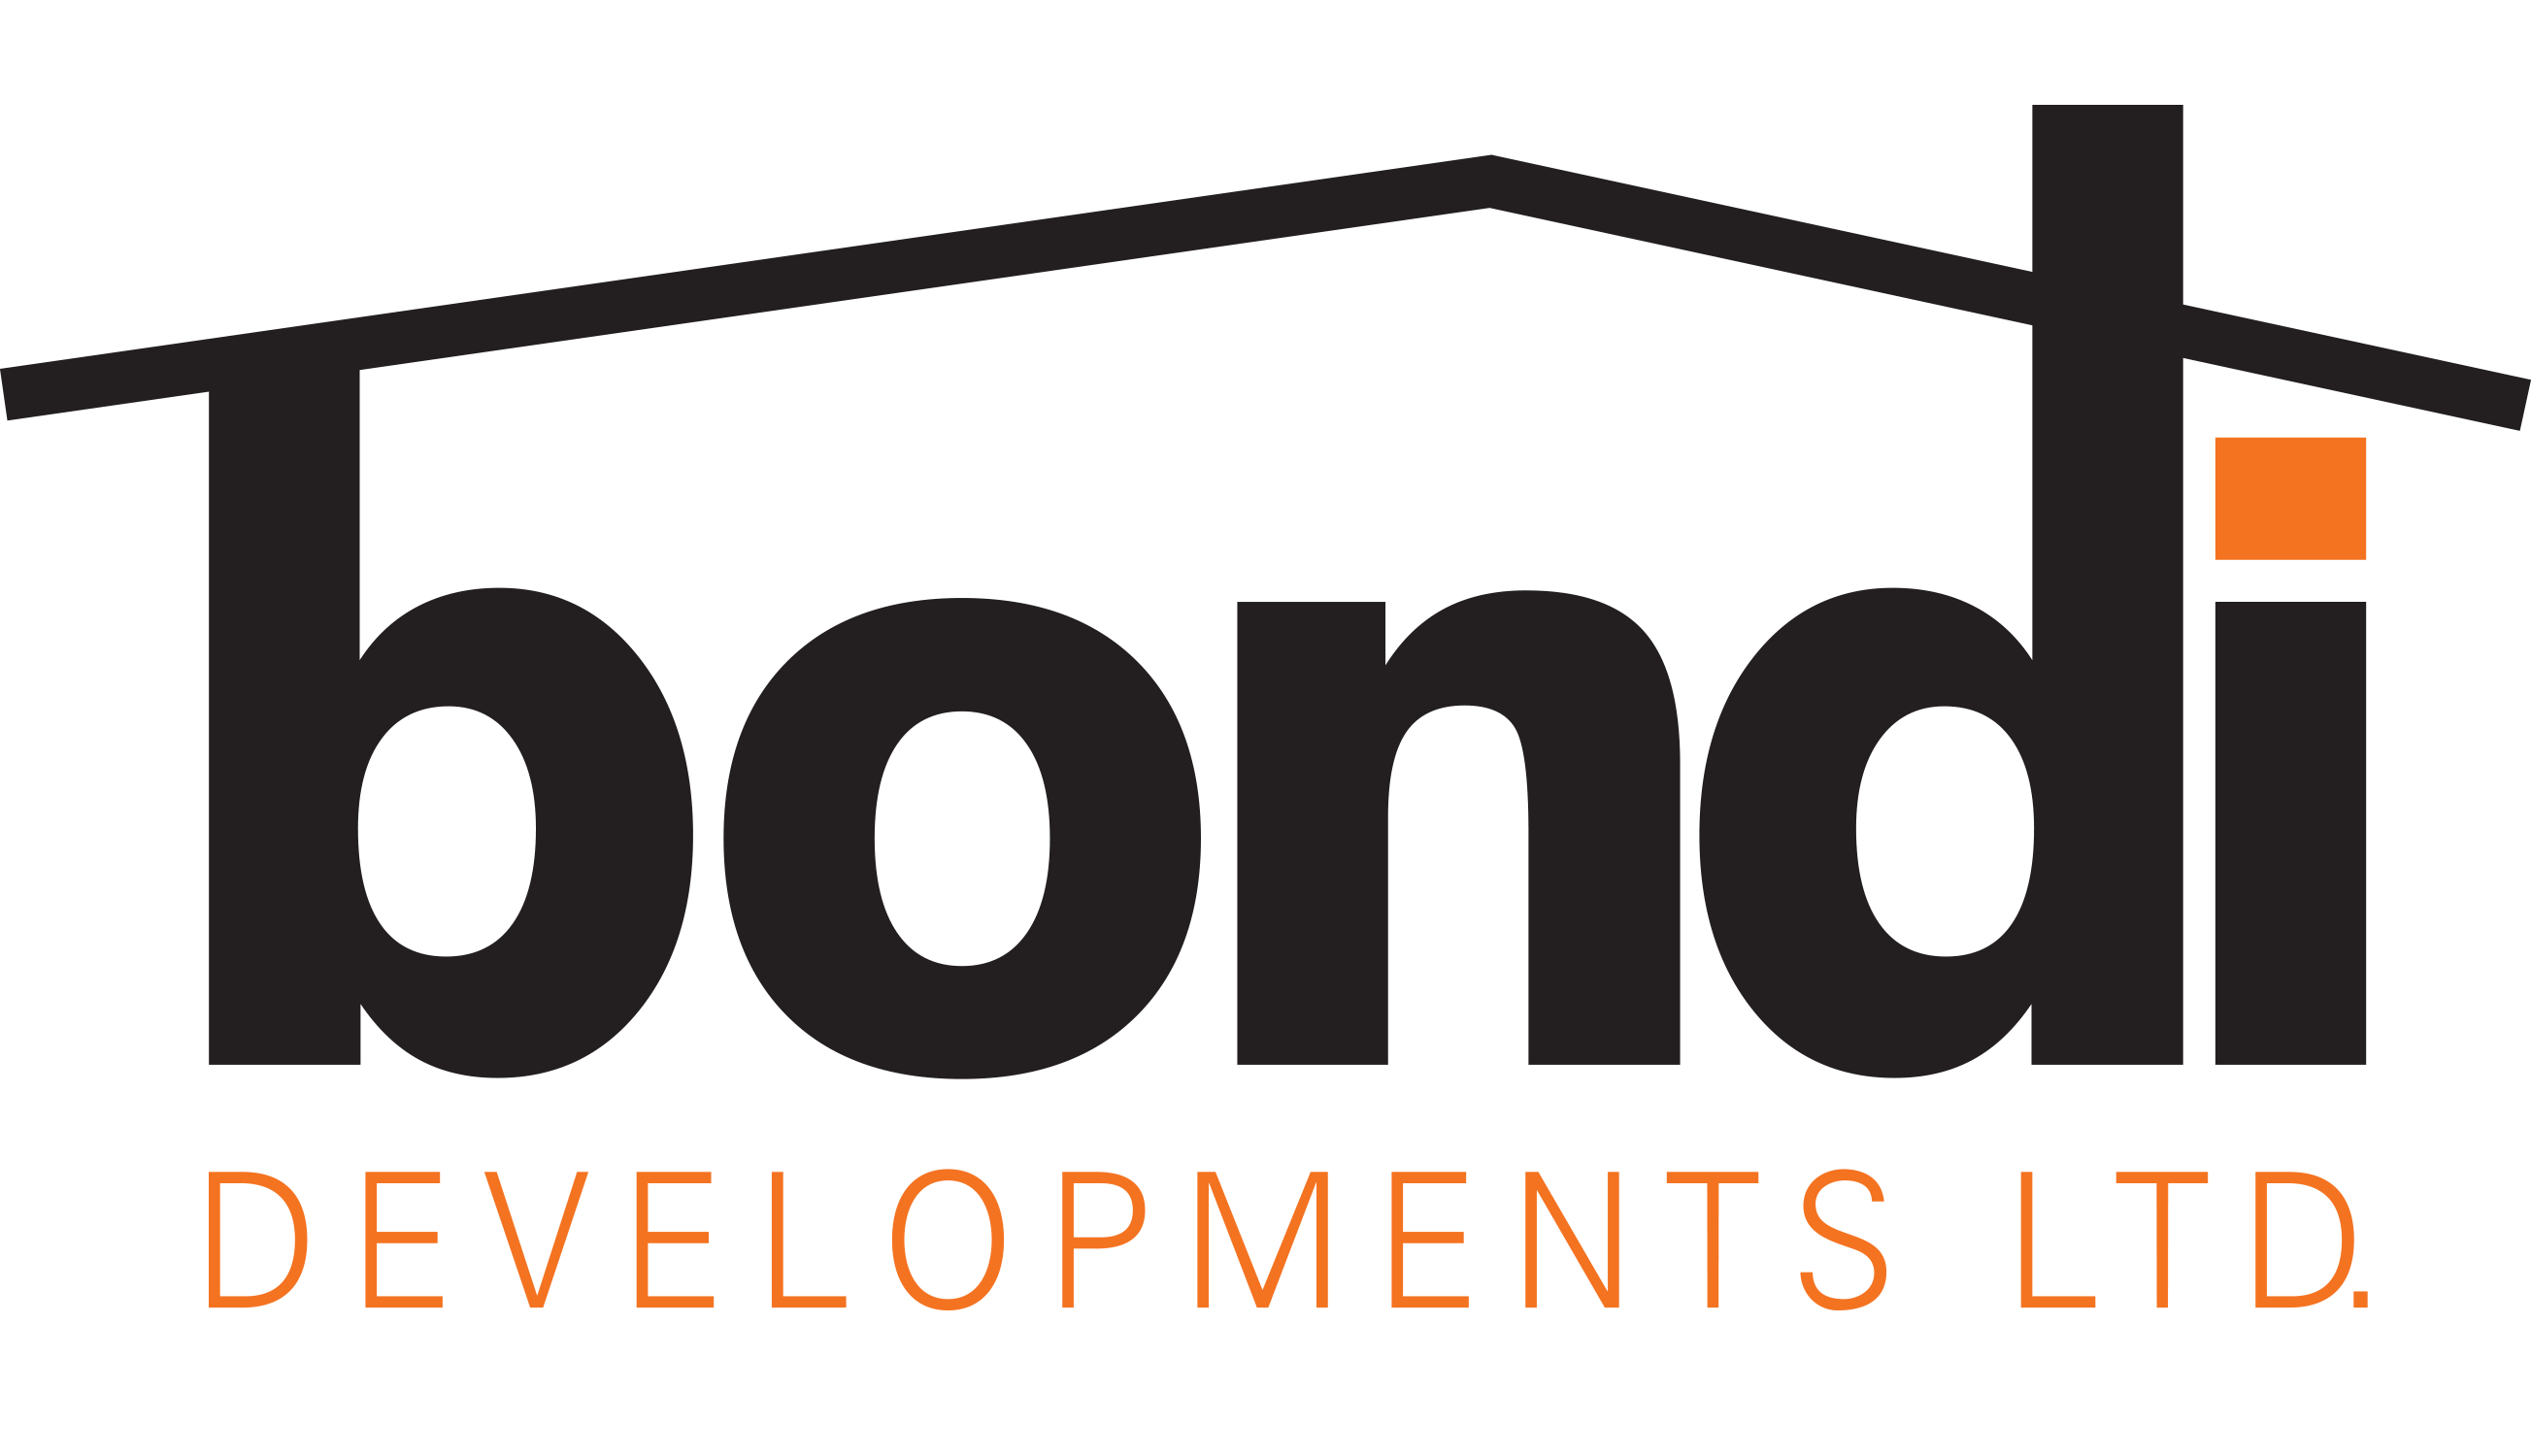 Bondi Developments Ltd. is a construction company that has been operating in Saskatoon for over 13 years, locally owned and operated by Gary Siemens.